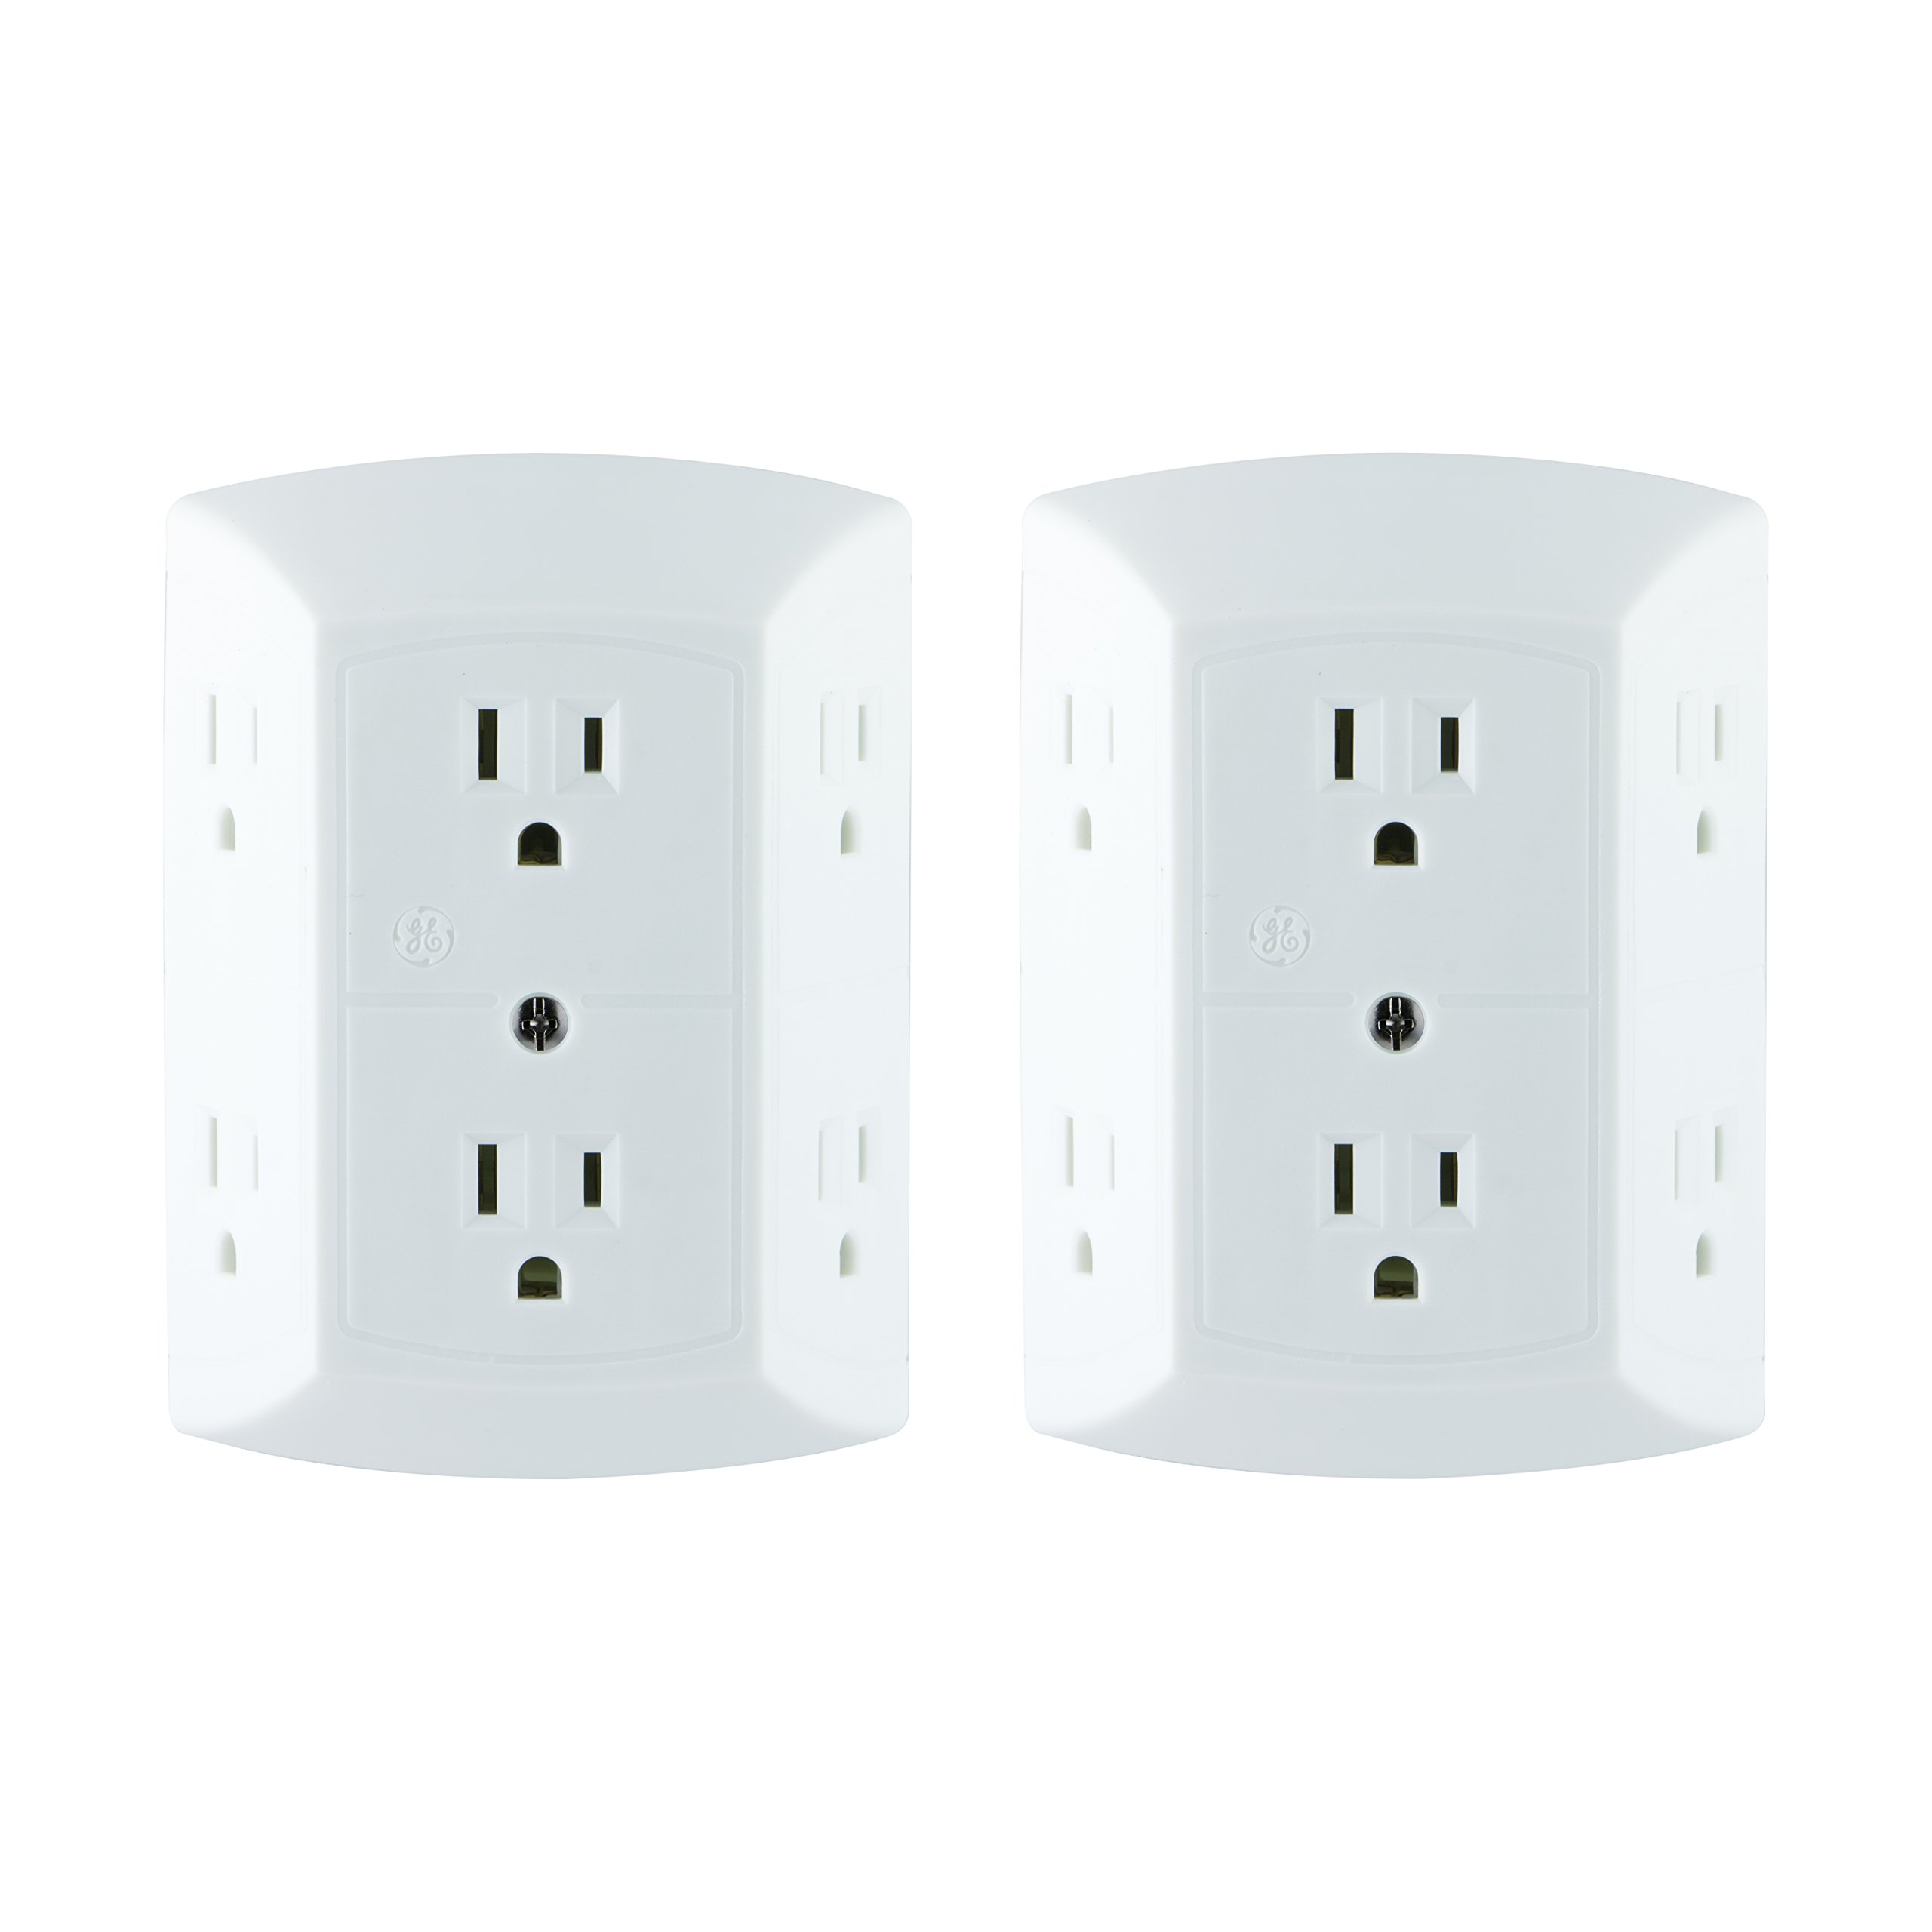 2 Pack: GE Grounded 6-Outlet Wall Tap with Adapter Spaced Outlets, Easy-to-Install, UL Listed, 40222